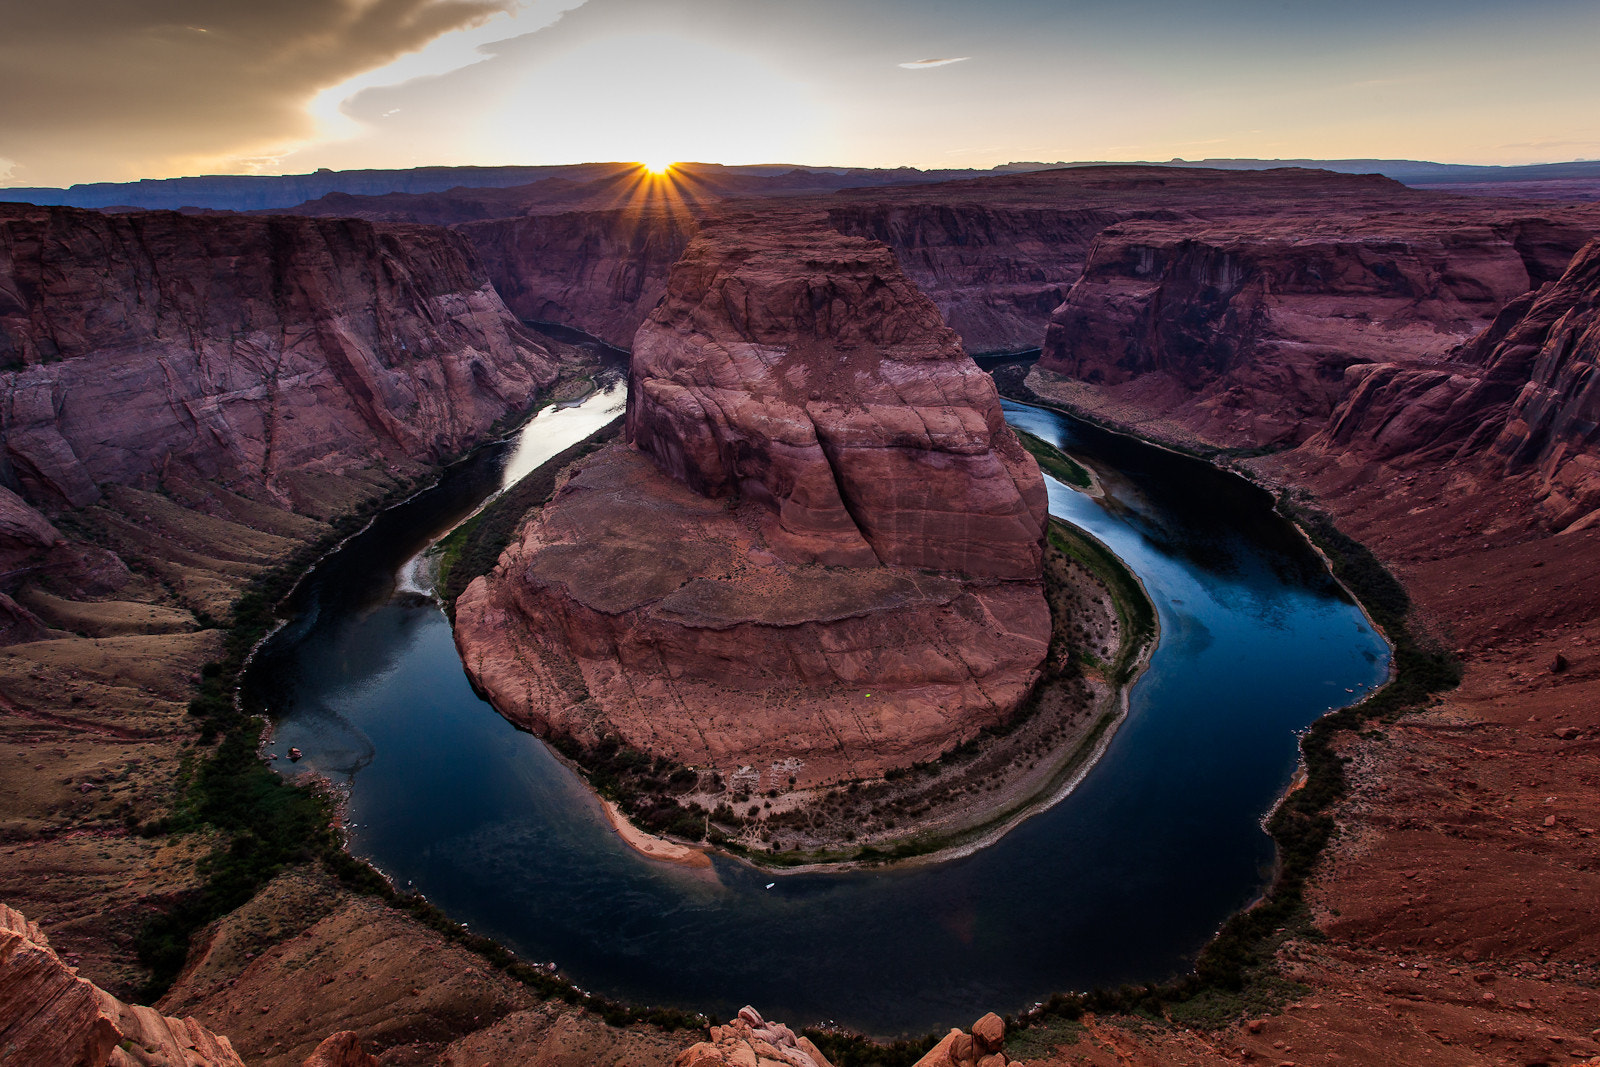 Photograph Horseshoe Bend by Marton Apai on 500px